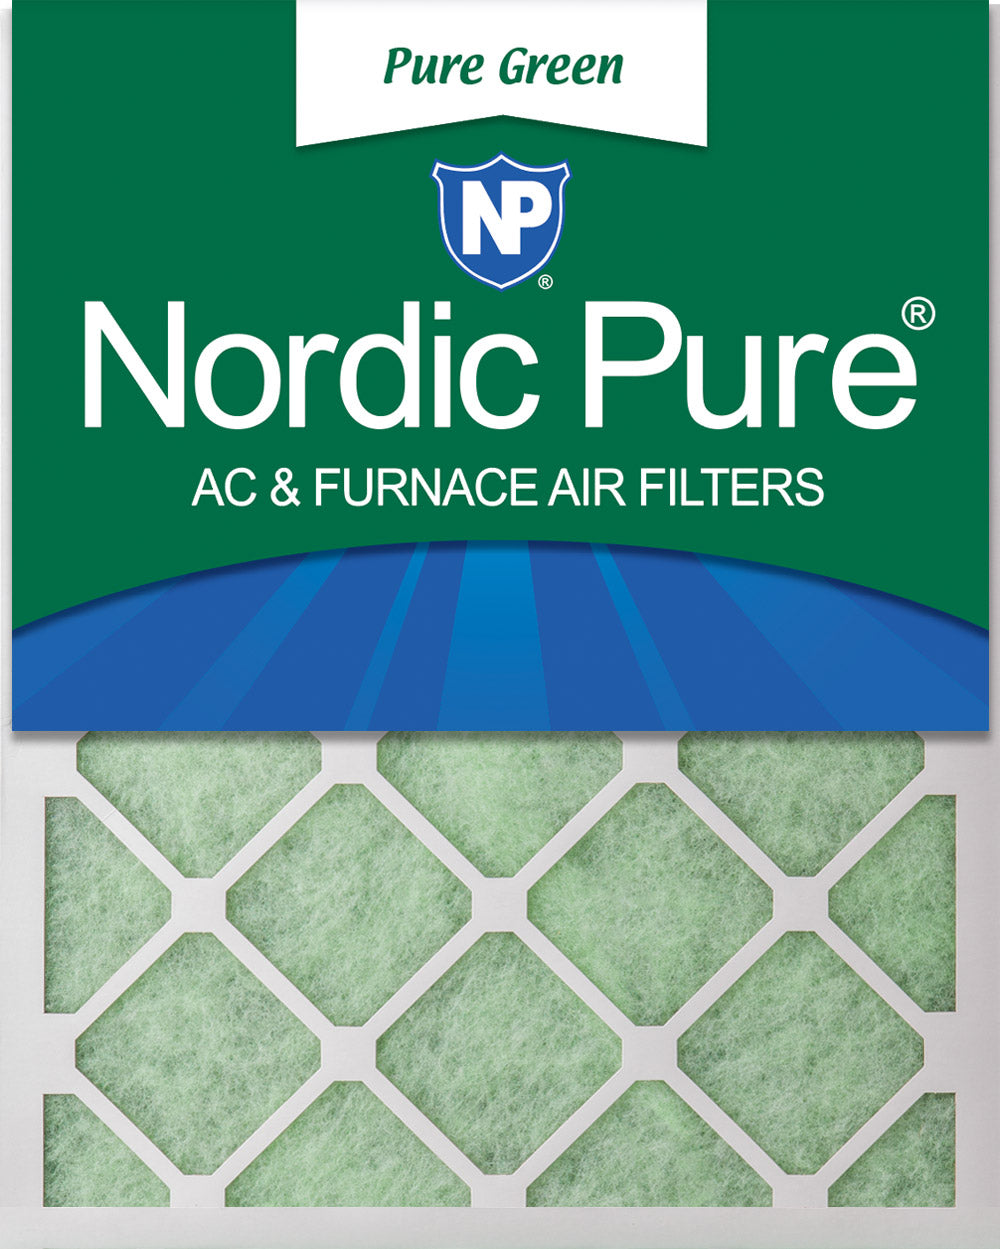 14x20x1 Pure Green Eco-Friendly AC Furnace Air Filters 3 Pack